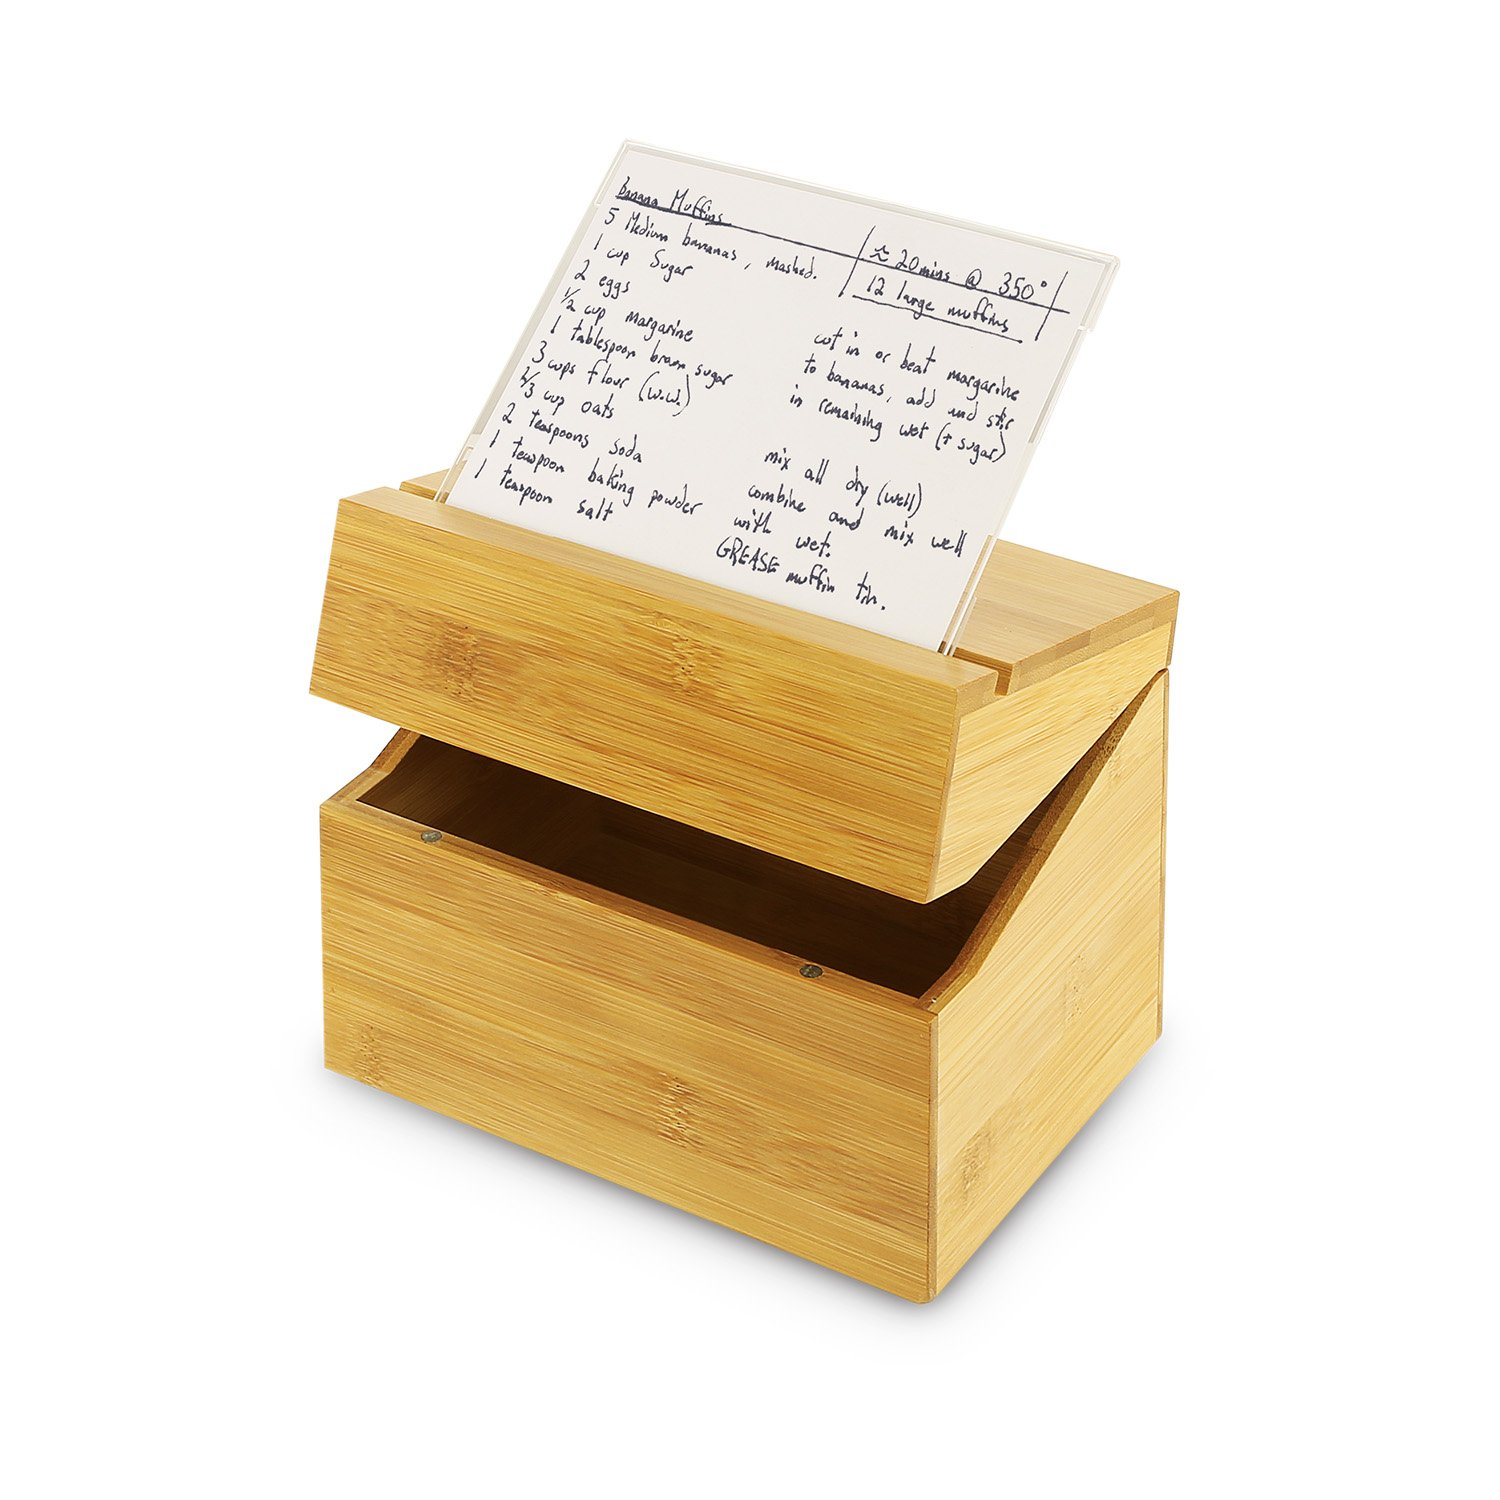 KOVOT Bamboo Recipe Box With Acrylic Recipe Card Holder by Kovot